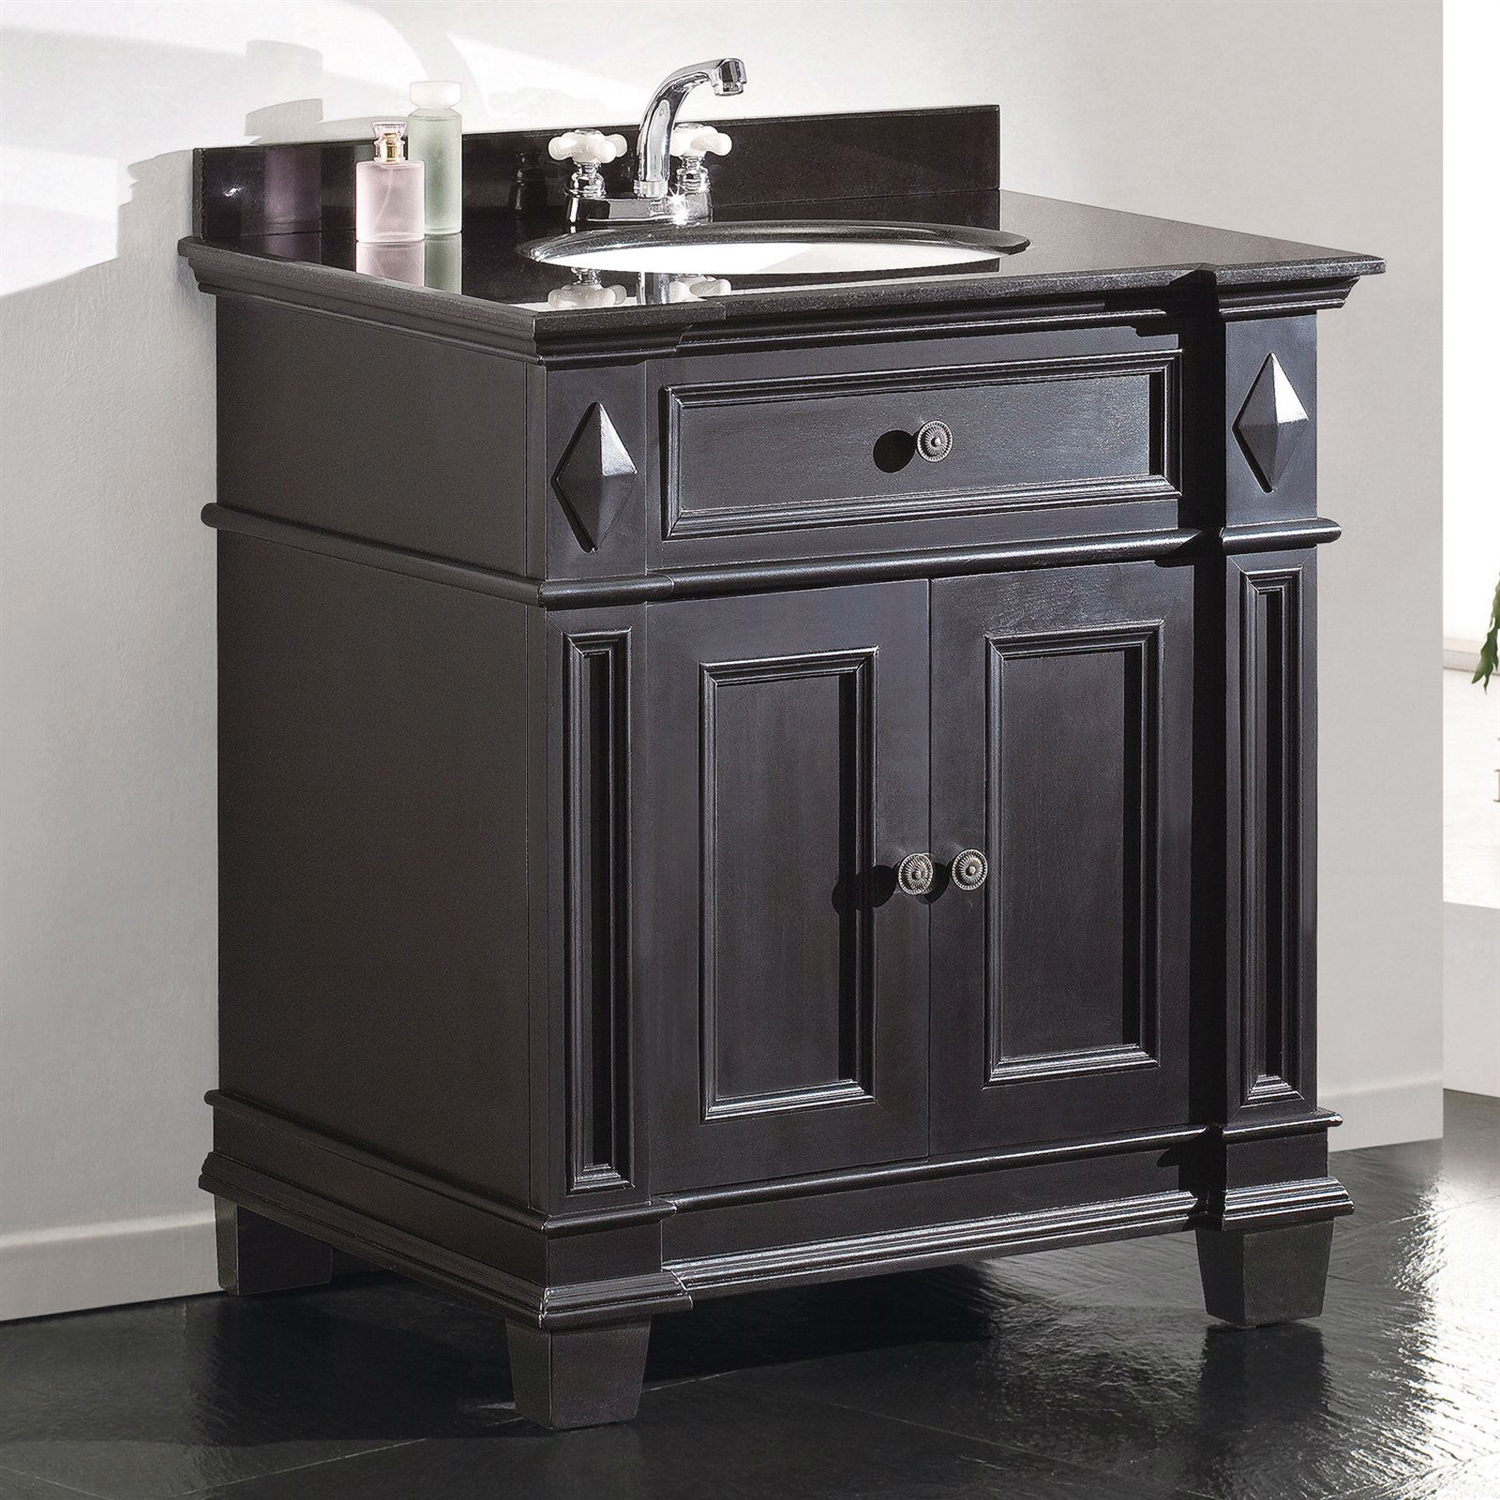 Single Sink Bathroom Vanity with Cabinet & Black Granite Countertop / Backsplash, ODE65915 :  This Single Sink Bathroom Vanity with Cabinet & Black Granite Countertop / Backsplash is a simple way to breathe new life into your bathroom décor. Its stunning cabinet base is made from sturdy, solid wood, featuring a two-door storage area built into the design. The piece is finished in an antique black and features solid metal hardware with a nickel finish. A black granite countertop is included, pre-drilled for a 4-inch minispread faucet assembly and paired with a white ceramic oval undermount sink basin; faucet assembly is not included. A complementary backsplash is included. Close Hinges, Soft Close Slides, Backsplash; Antique Hardware; Hardware Included Yes; Installation Free; Standing Material Wood; Undermount; Number of Doors 2; Number of Shelves 1; Sink Oval Sink Color; Traditional Type; Full Bathroom; Vanity Set Warranty 1 Year.